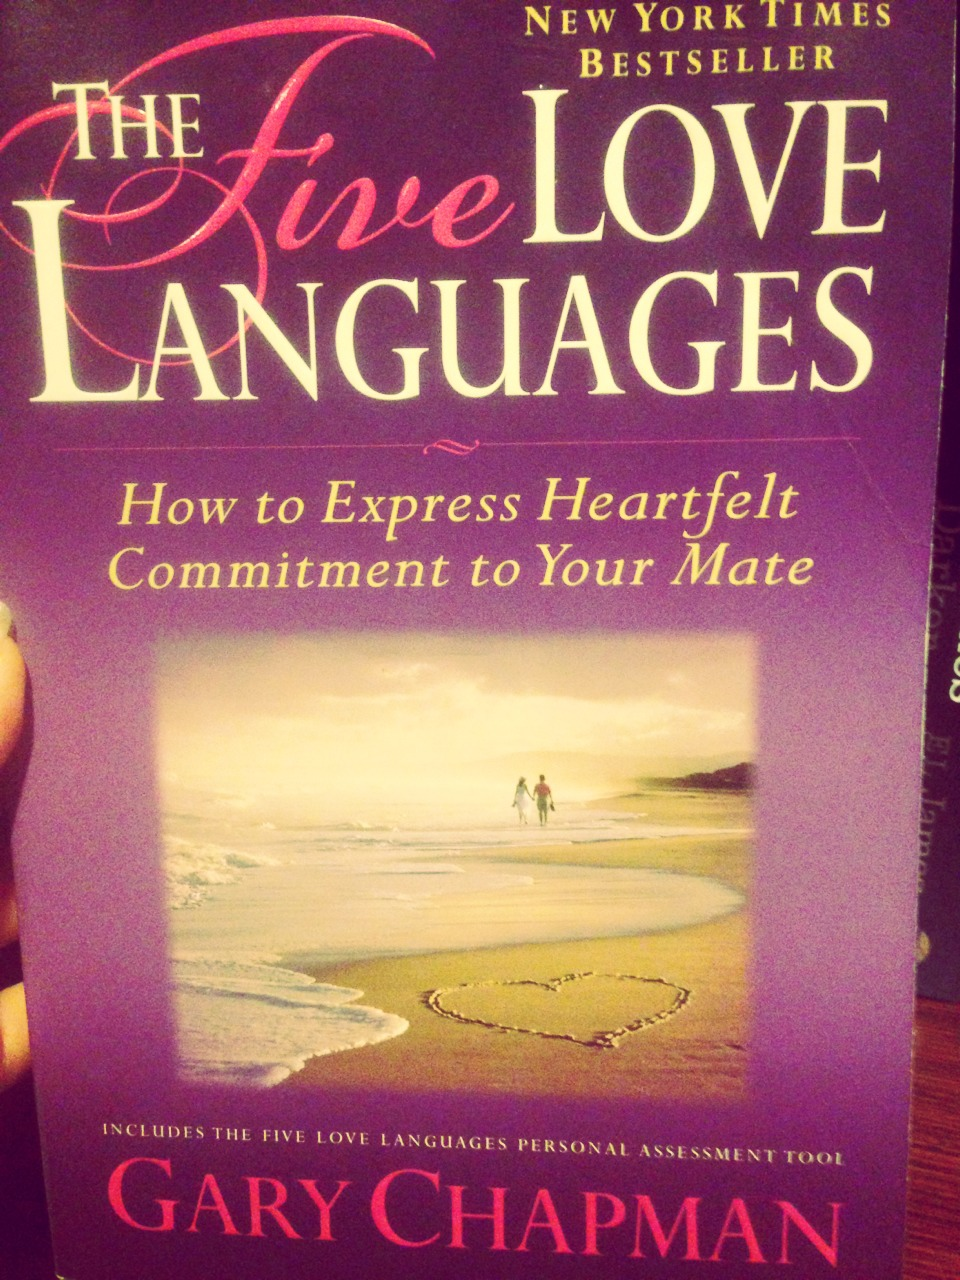 This is a great book on how to show love to each other. There are 5 different love languages and we all have different ones.  Make sure you can speak the same love language as you partner and know how to keep their love tank full. Great book